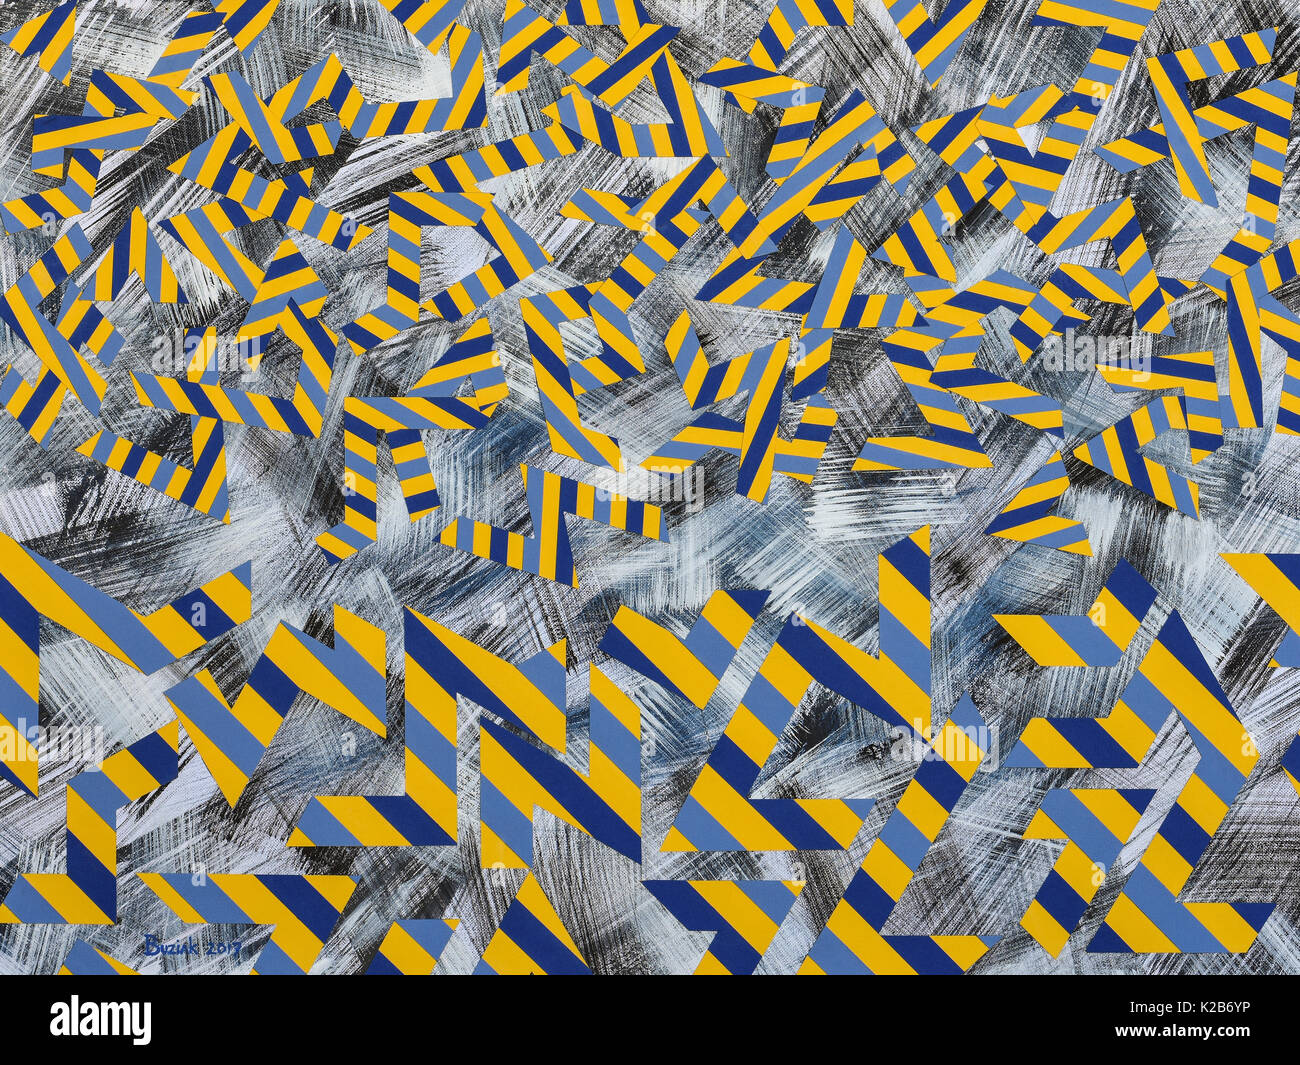 'Vauban Falling Into Place' - abstract artwork by Ed Buziak. - Stock Image